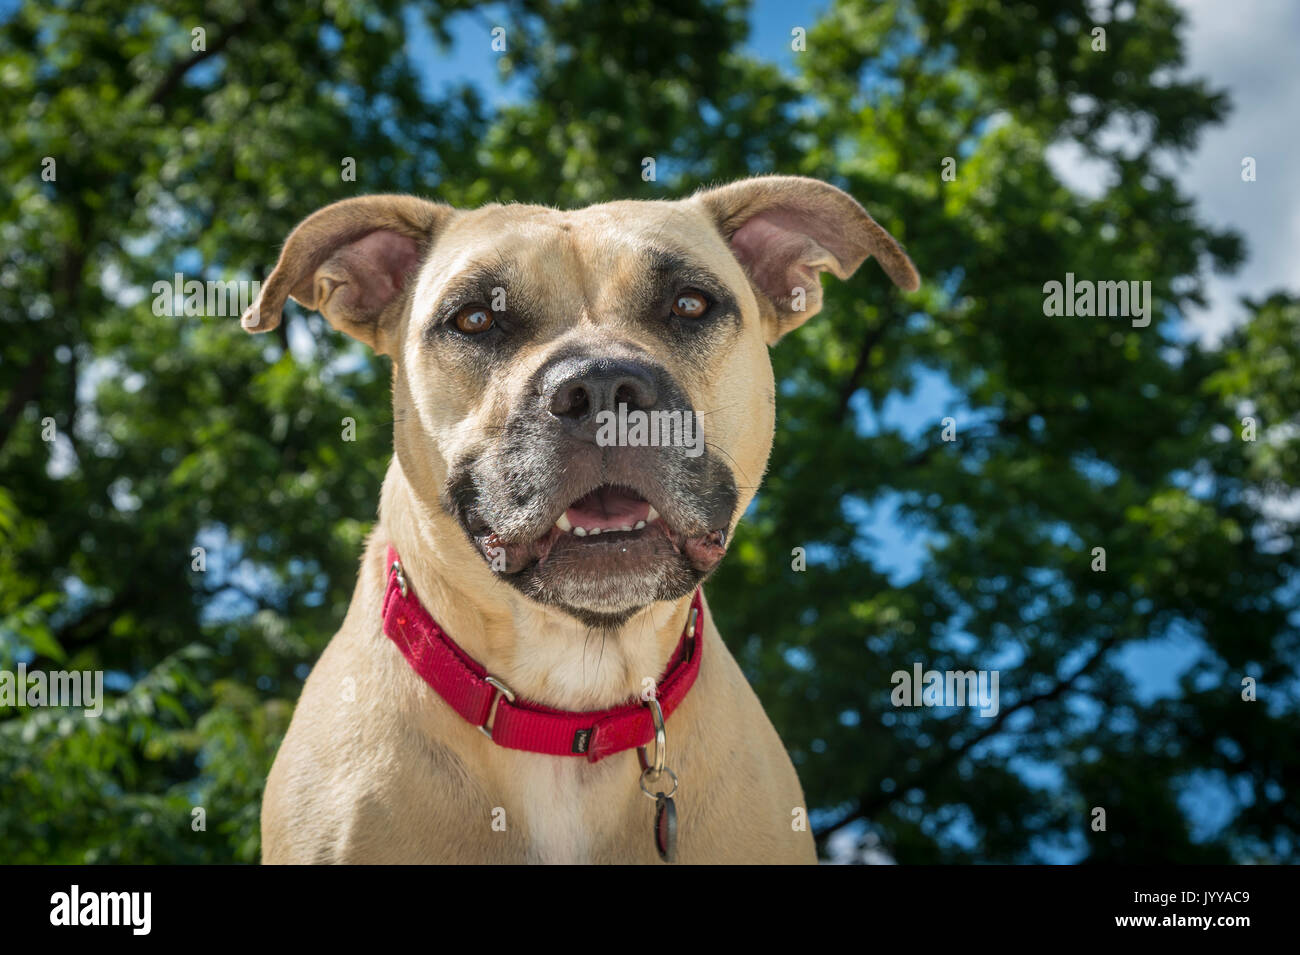 Happy Portrait Of Pit Bull Dog - Stock Image